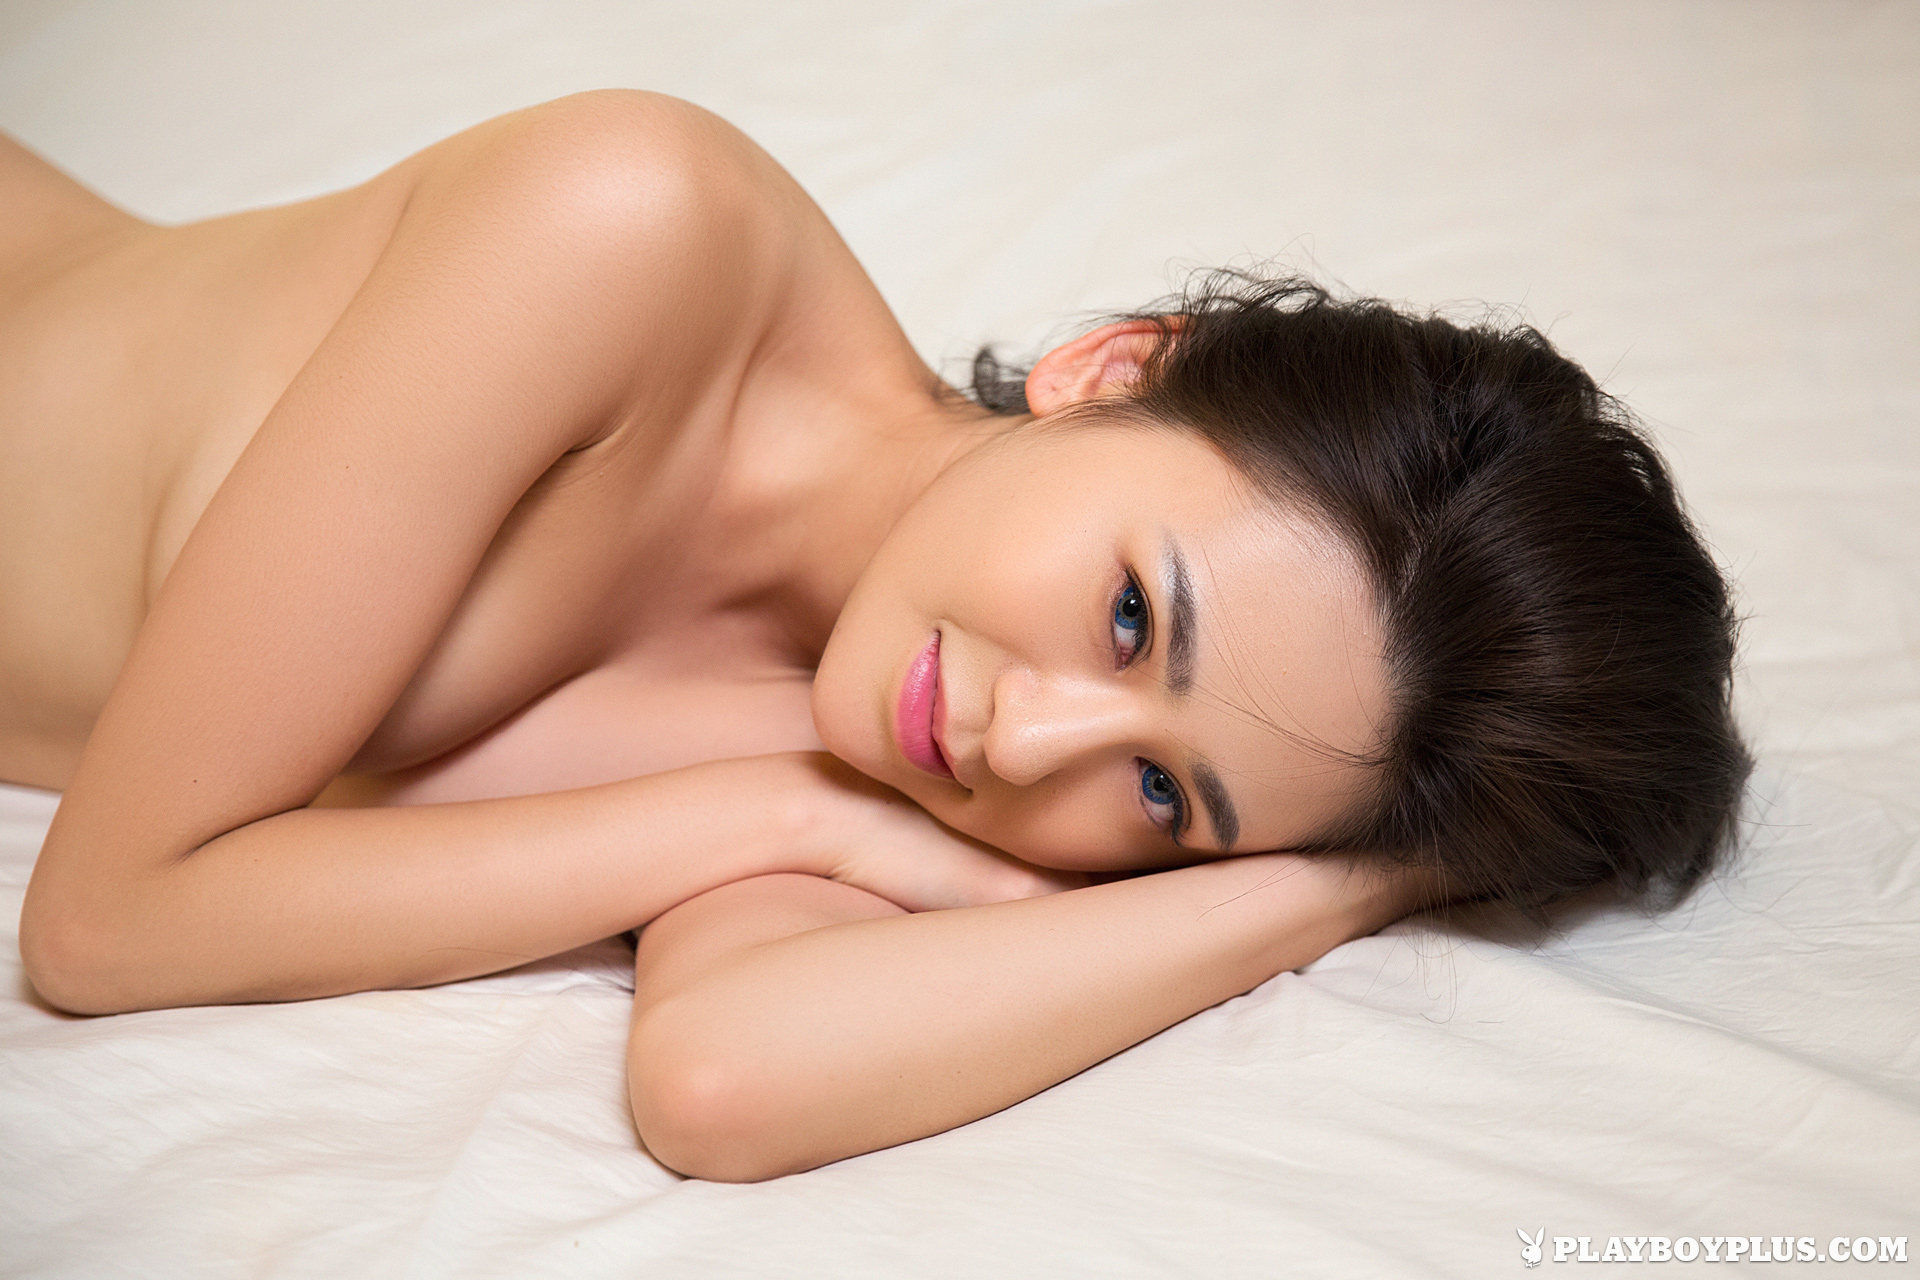 Nude model girl china shoulders down